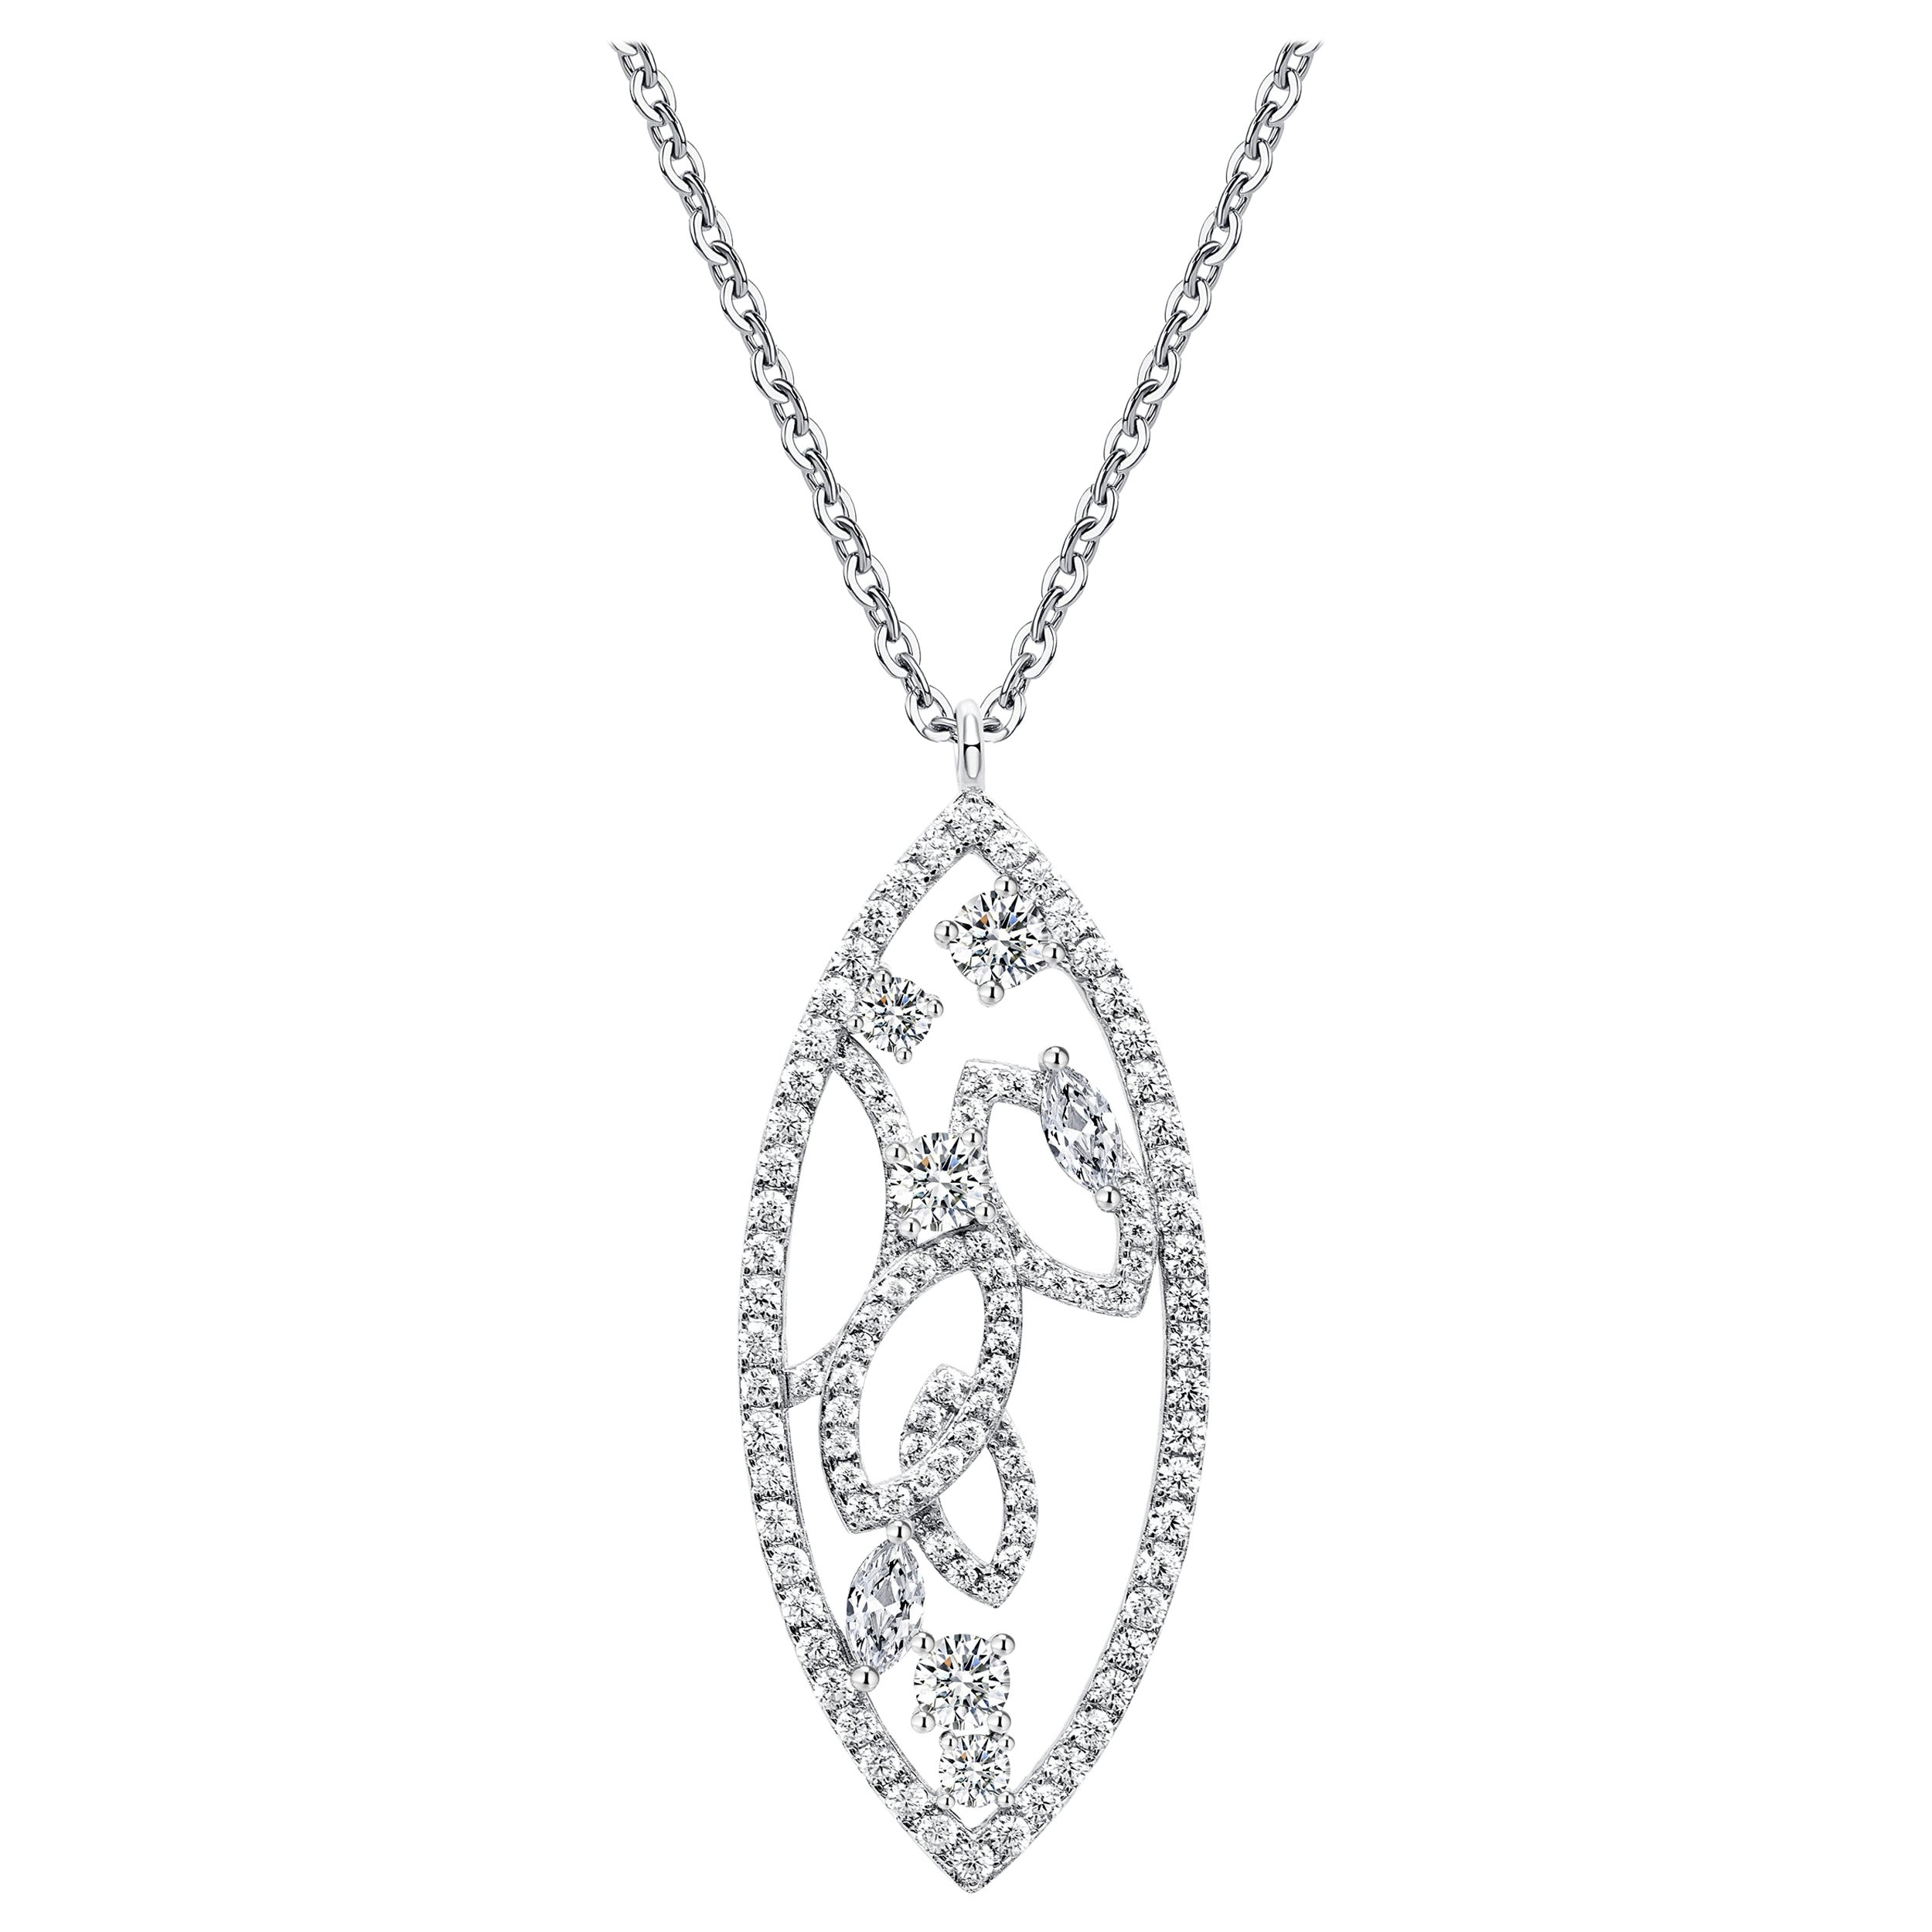 18 Karat White Gold Diamond Lattice Pendant Necklace